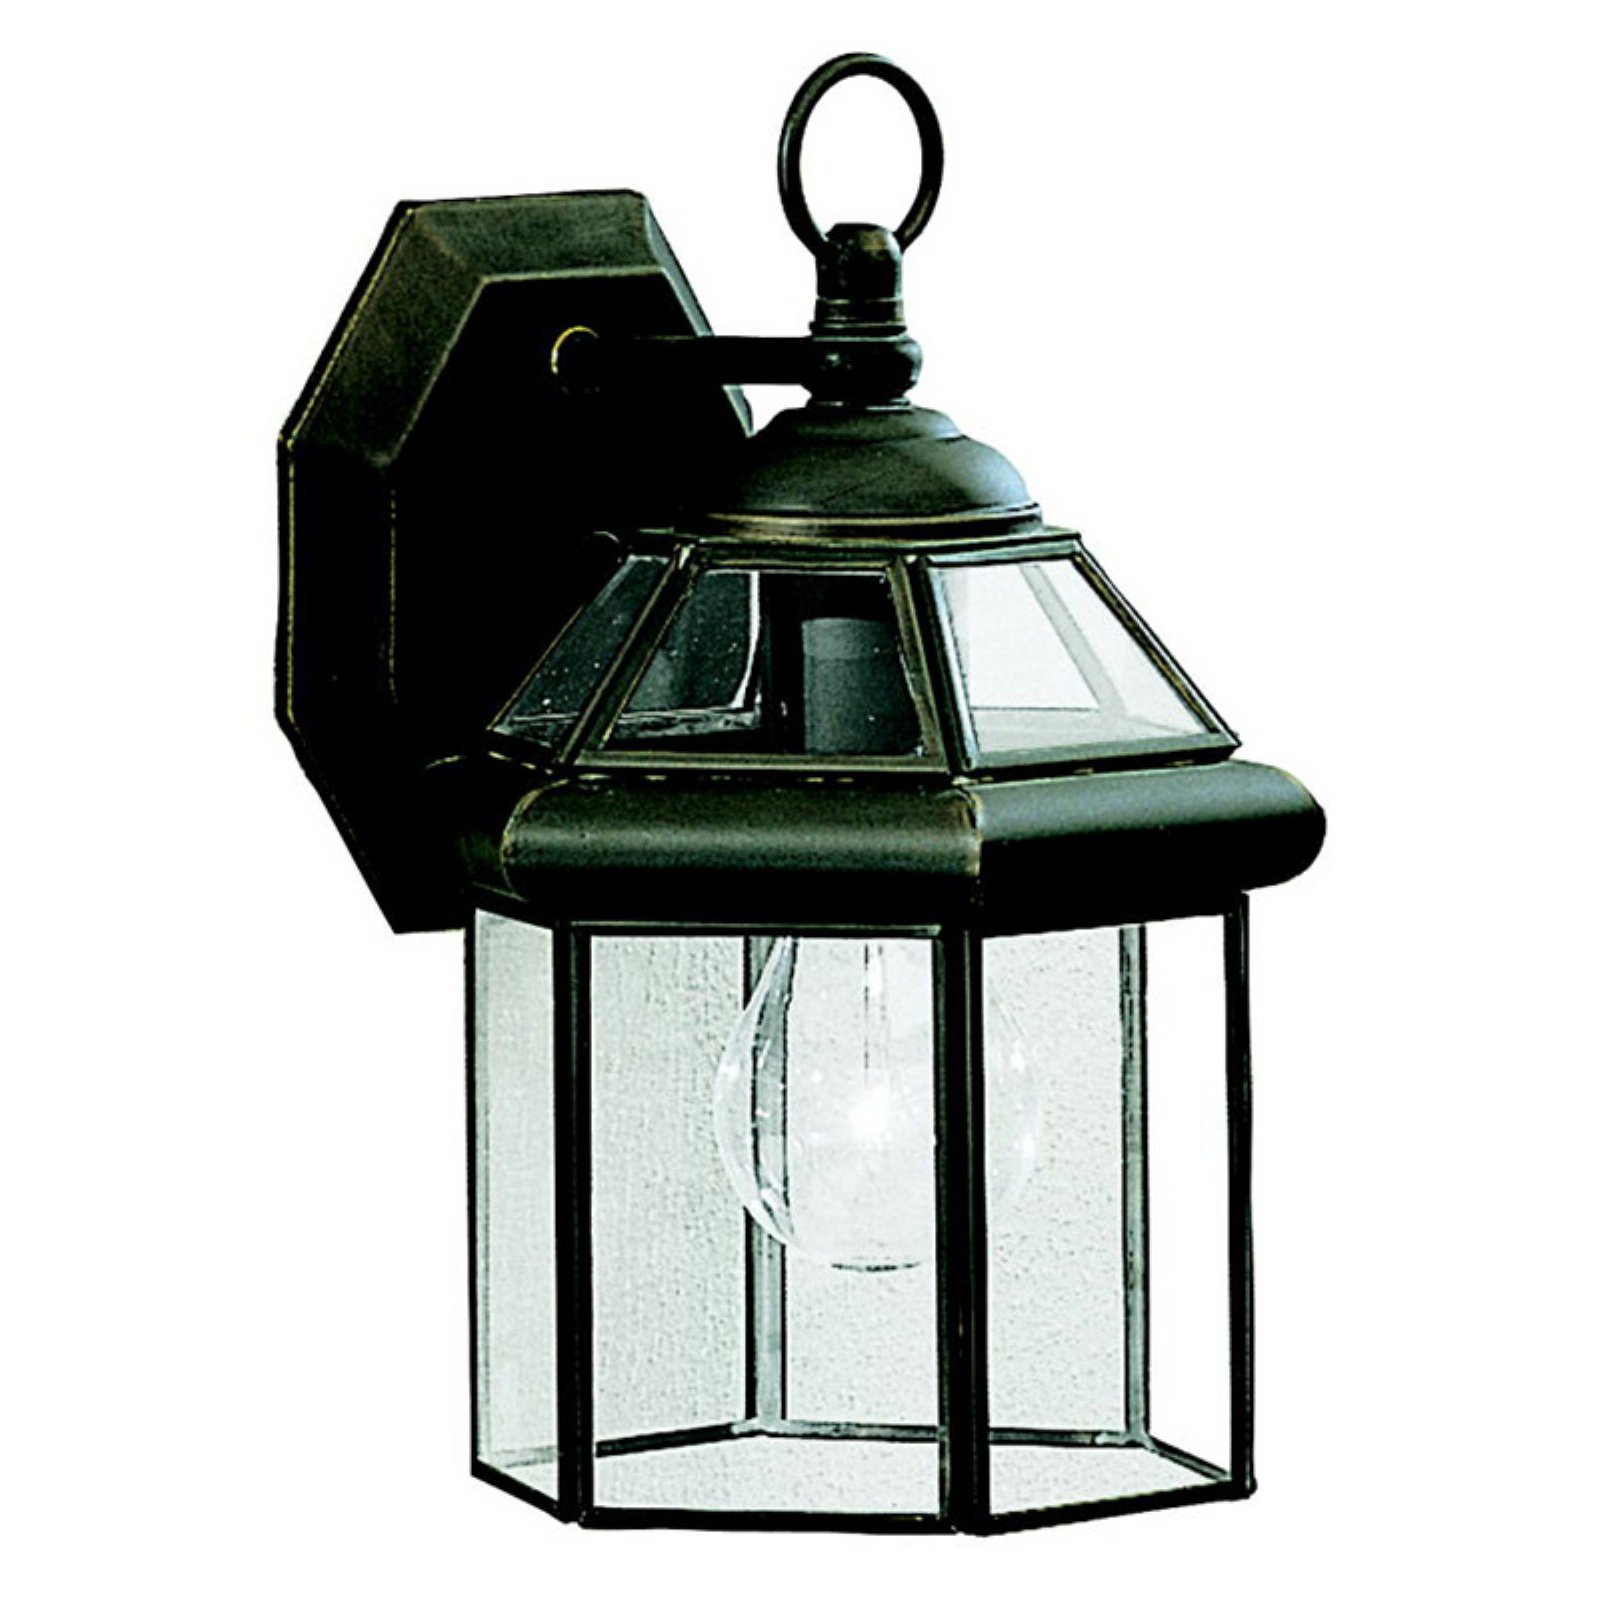 Kichler Embassy Row 9783 Outdoor Wall Lantern - 7 in.